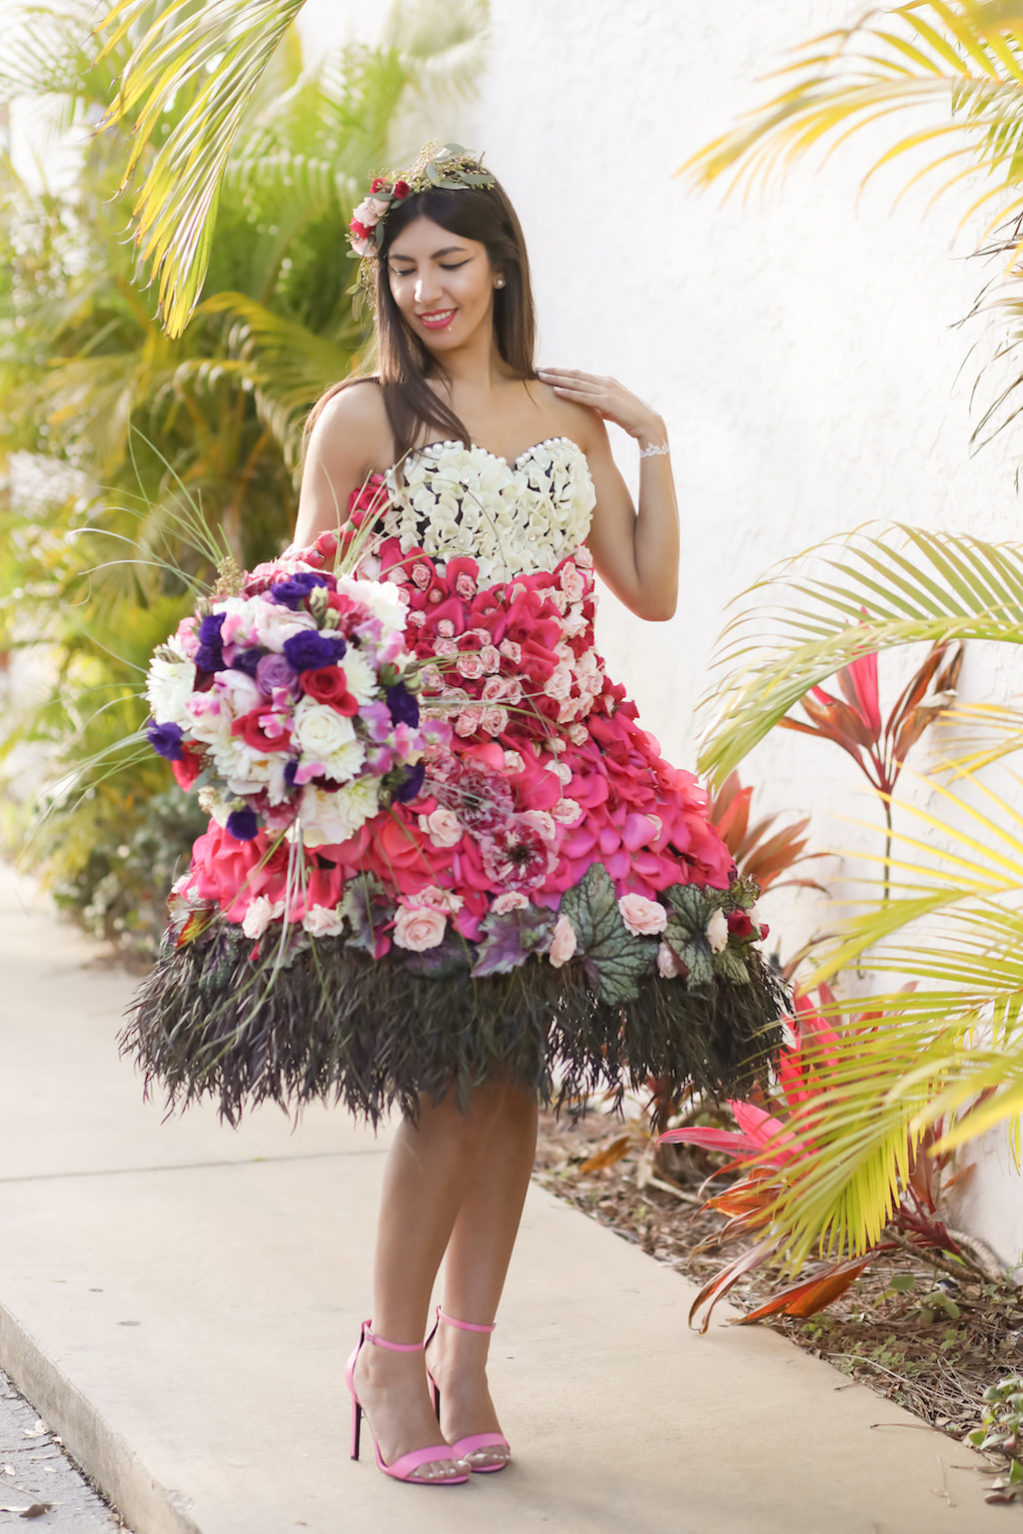 Outdoor Bridal Portrait in Creative Flower Dress with Pink, Fuchsia, Purple, Red and White Florals and Greenery with Bouquet, and Pink Open Toe Stiletto Heels   Tampa Wedding Florist Gabro Event Services   Photographer Lifelong Photography Studios